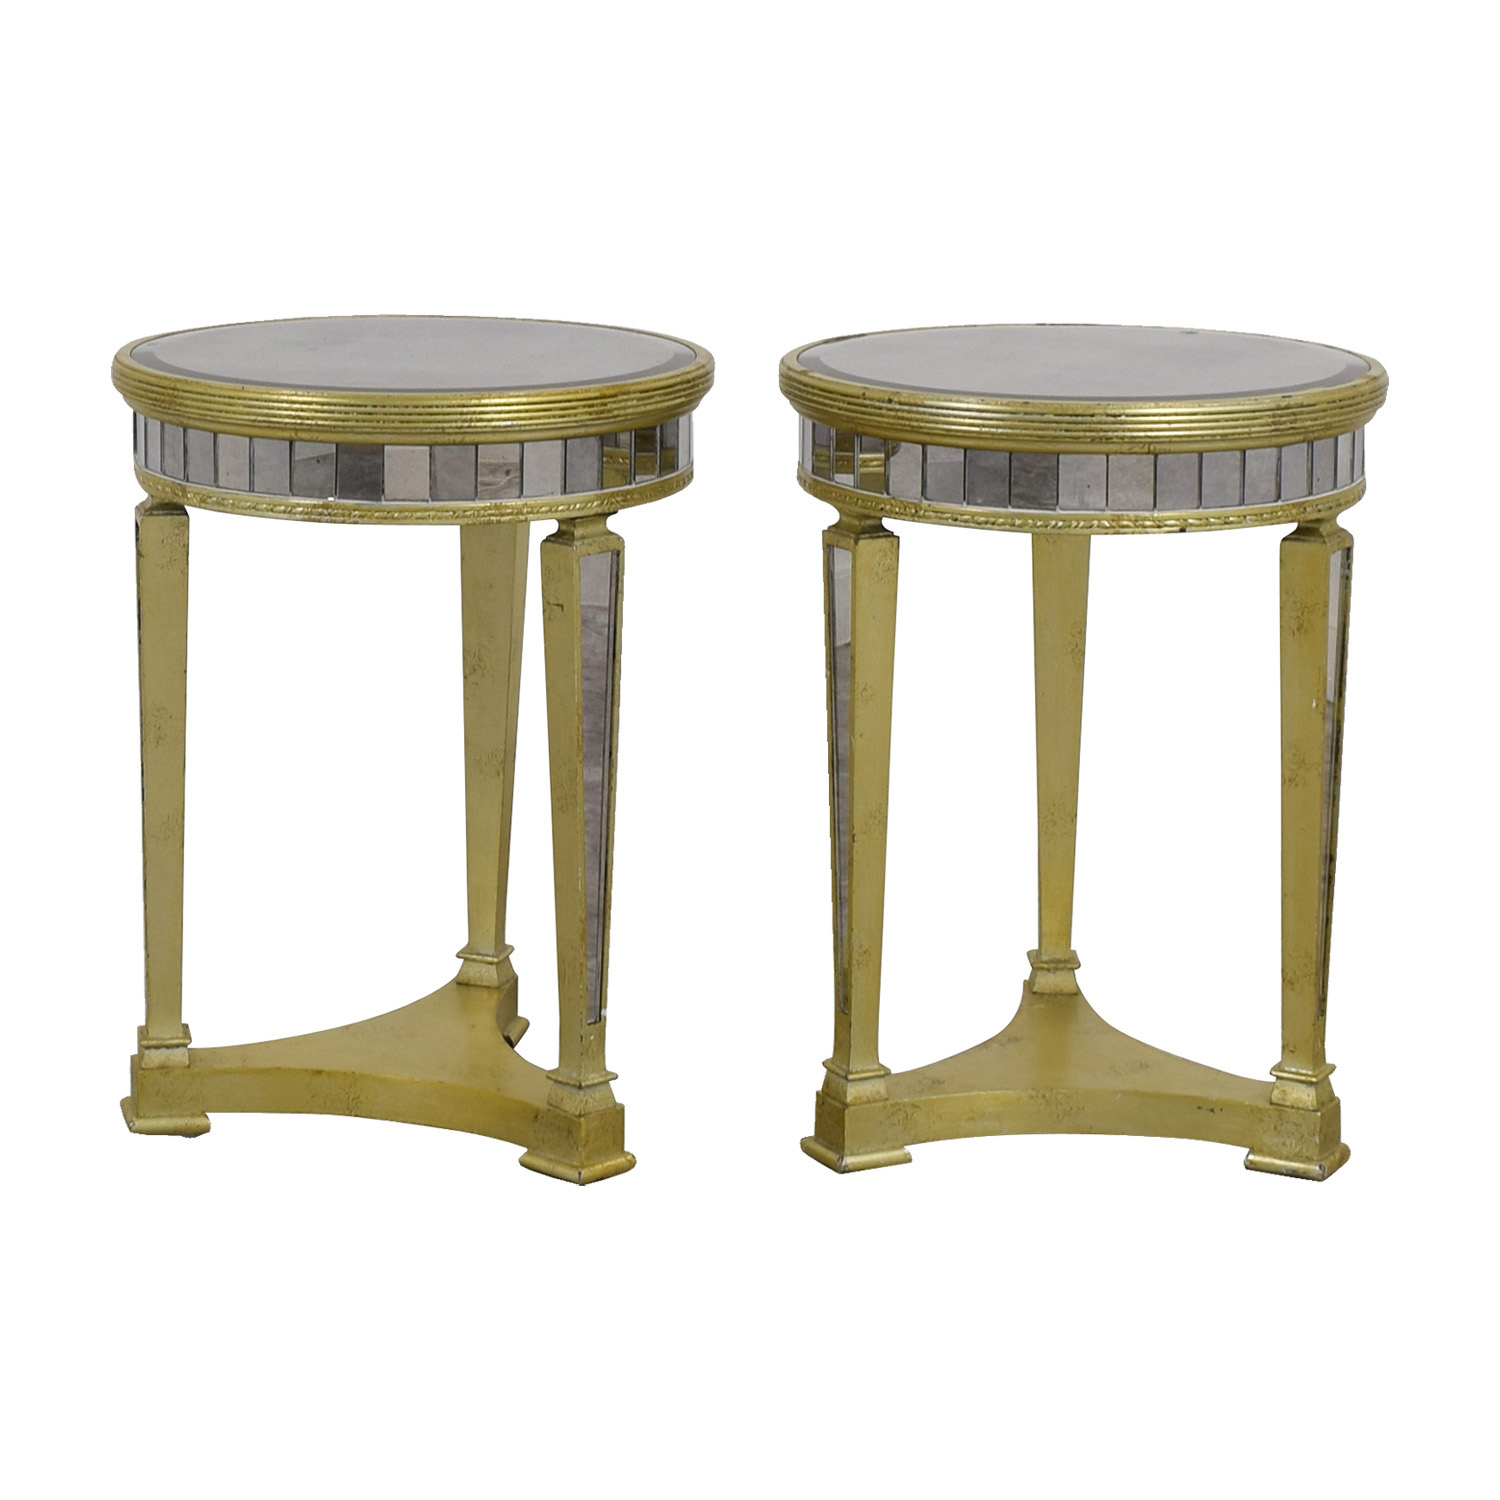 off galleries borghese mirrored side tables gallerie accent table small teal contemporary wood coffee designer white inexpensive nautical lamp shades pier one wall art piece